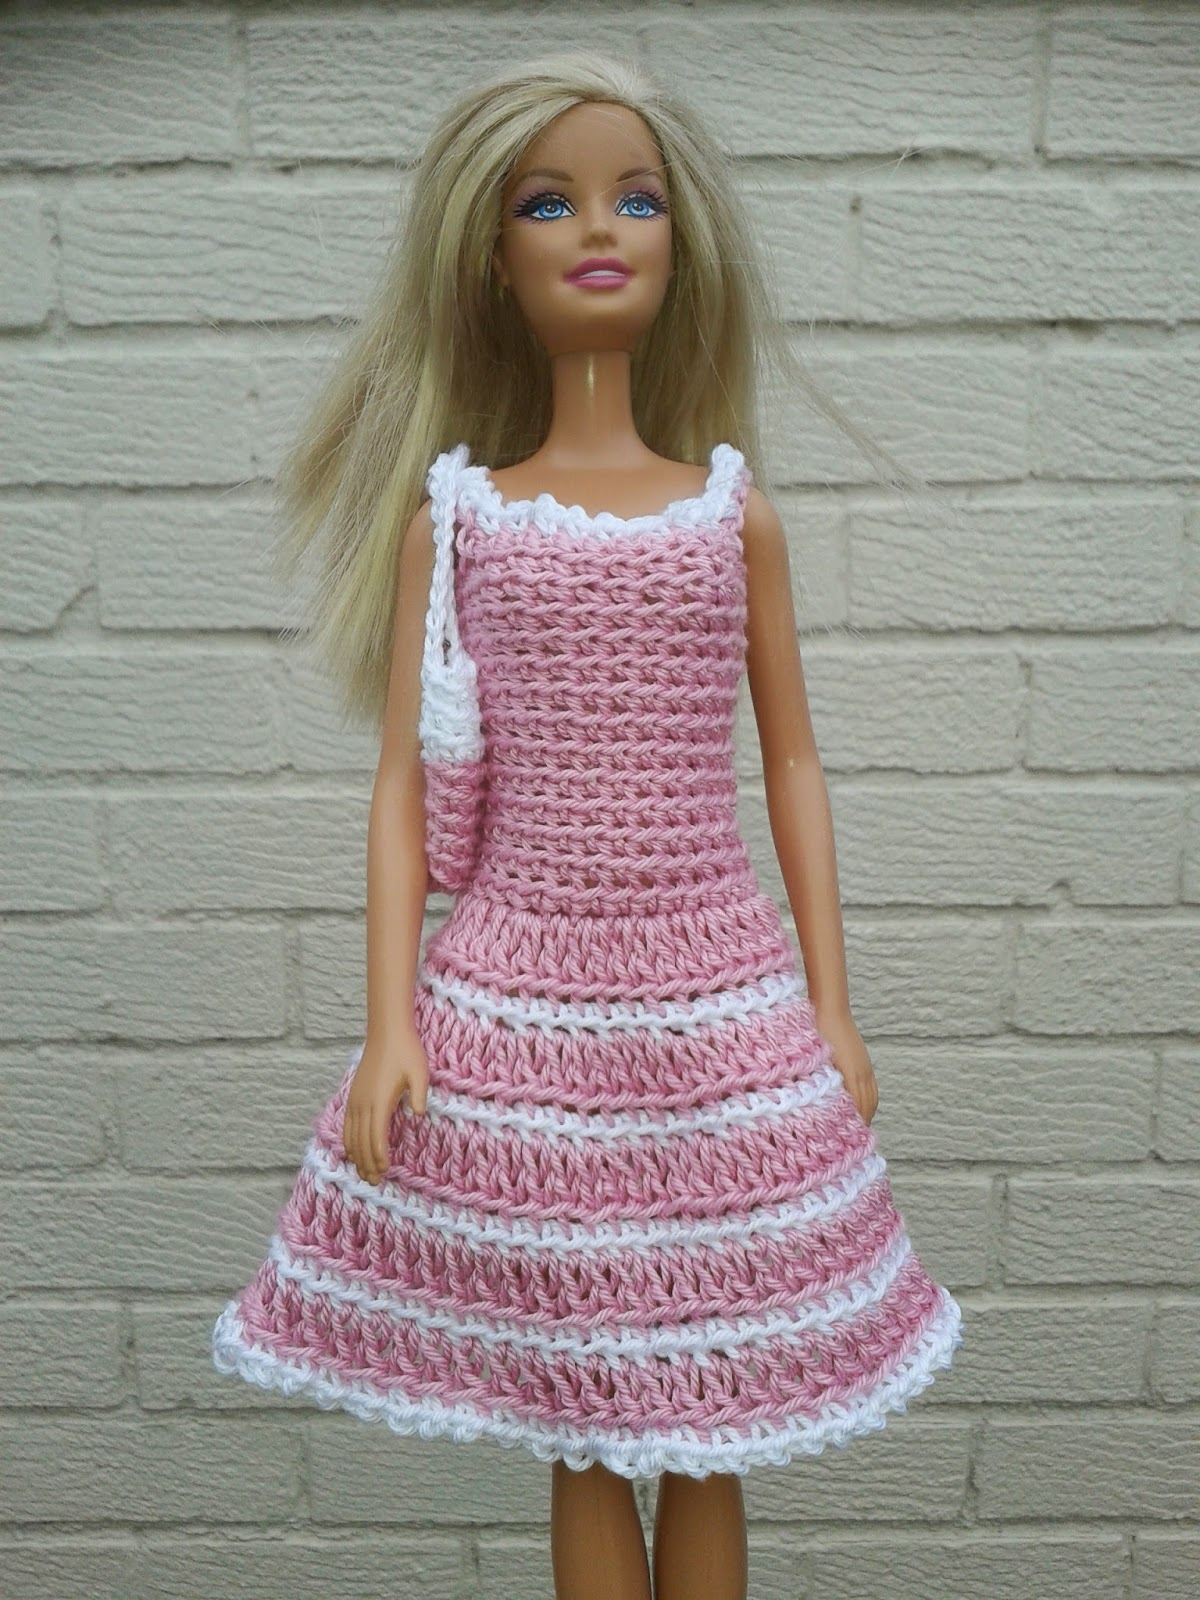 Crocheting Doll Clothes : Lyns Dolls Clothes: Barbie Crochet Dress